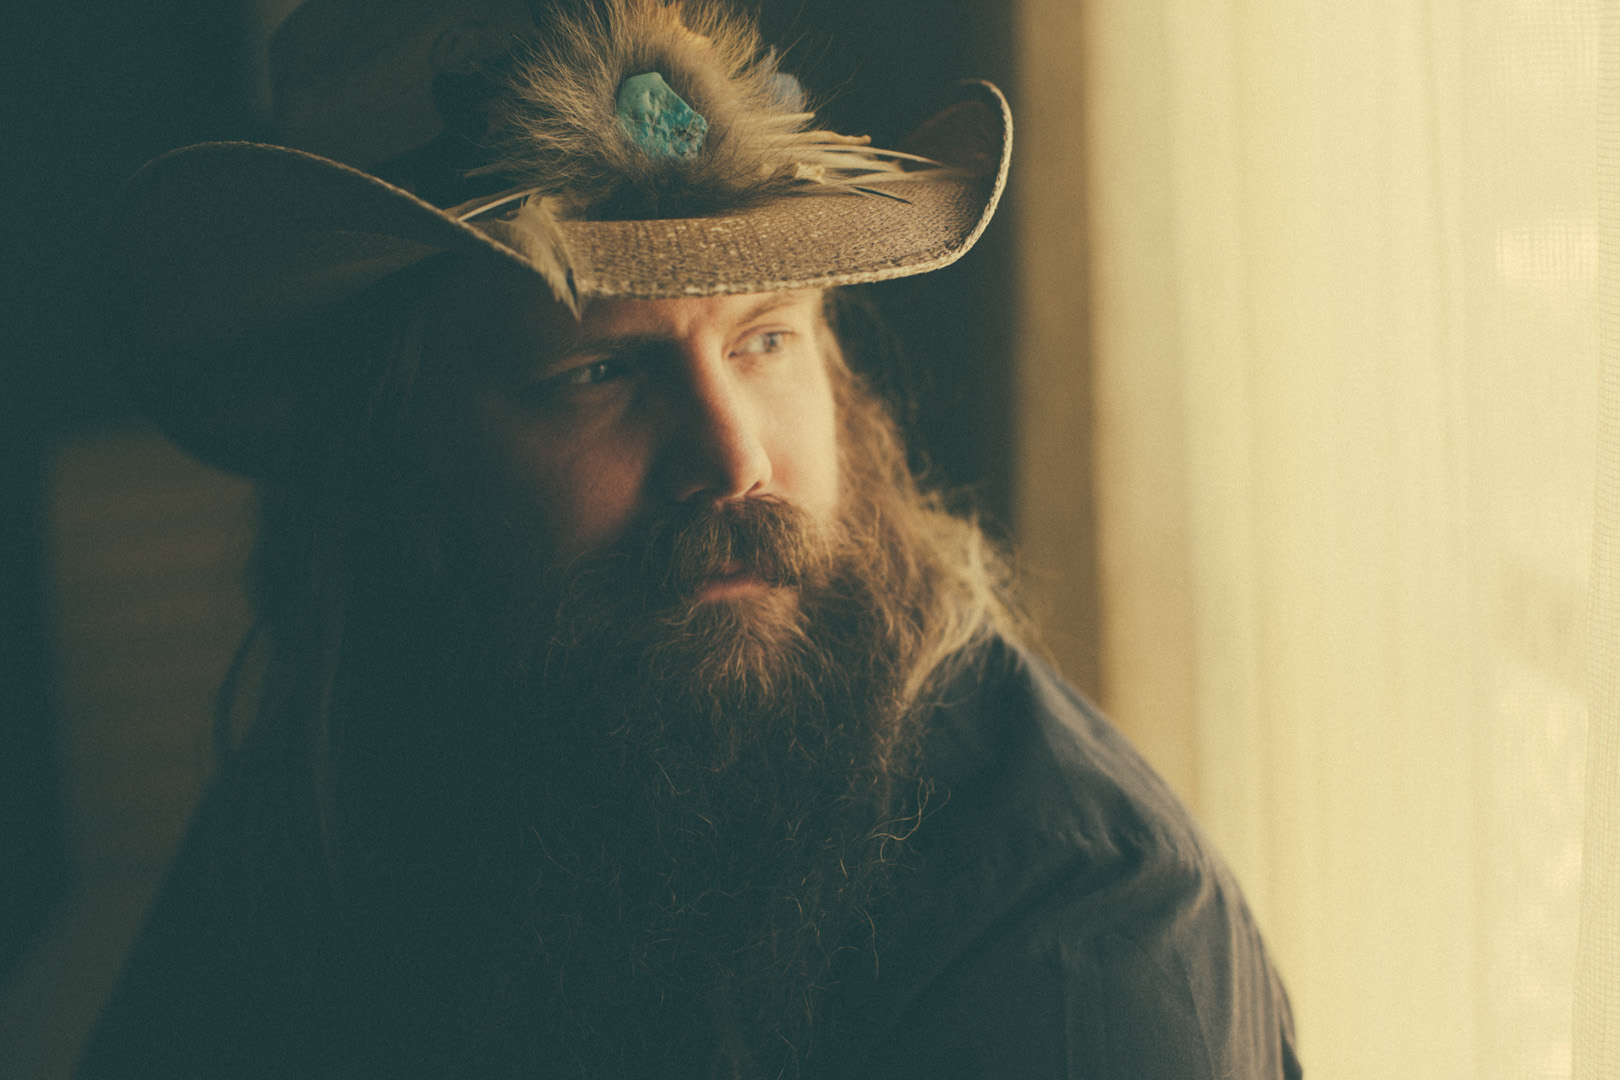 Chris Stapleton, nominated for New Male Vocalist Of The Year